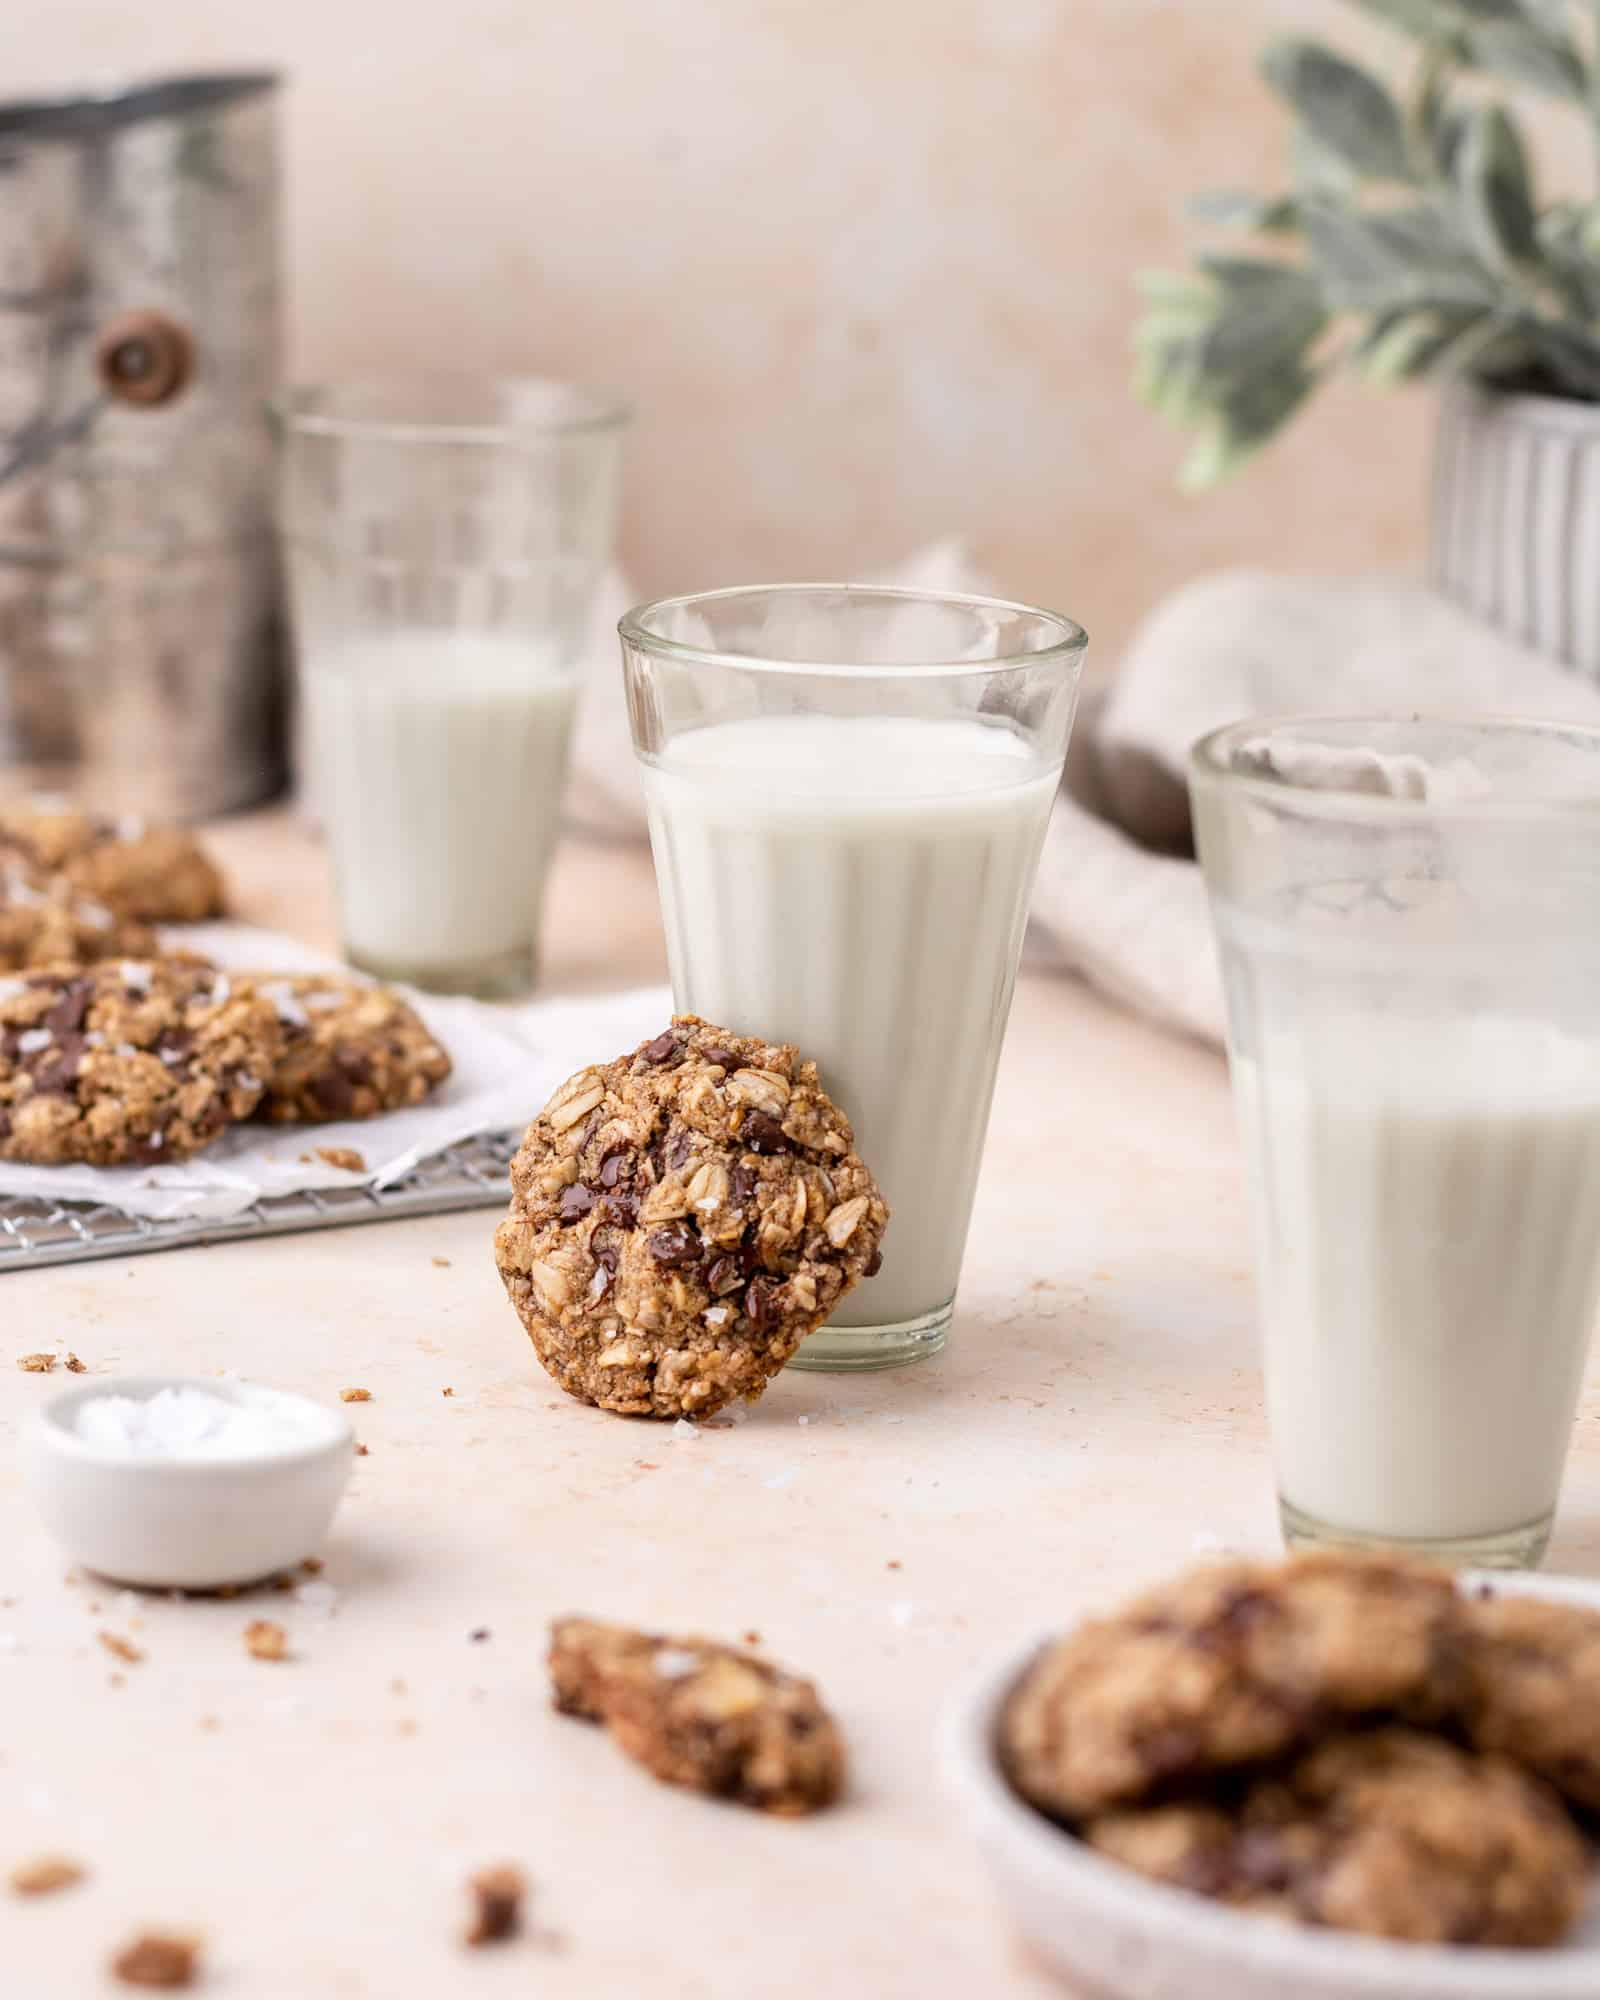 oatmeal chocolate chip cookie leaned on a glass of milk